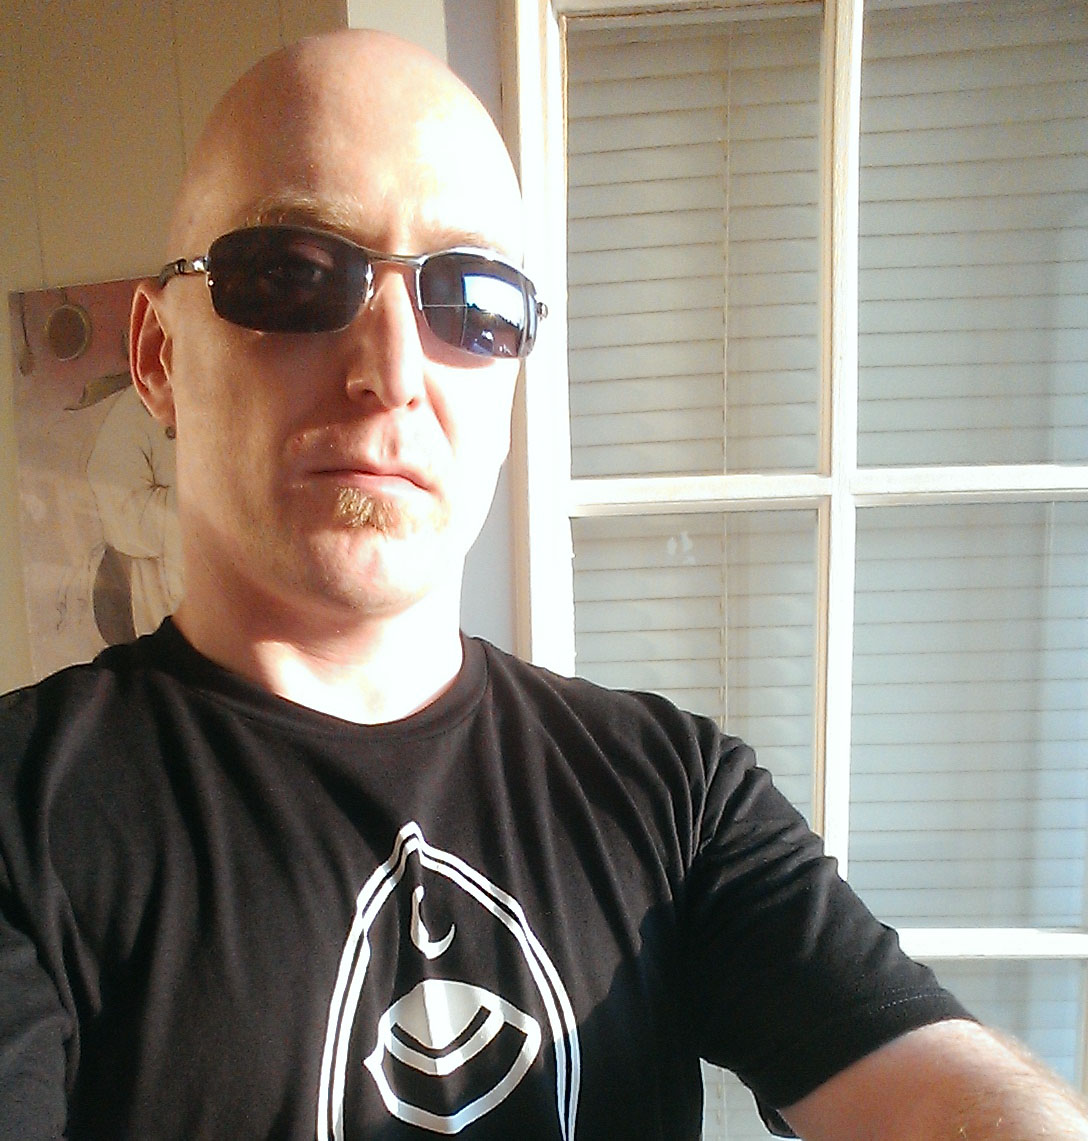 Jeff Simmons   Hey, Jeff! Feel free to write your bio here. I would prefer if each person wrote their own bio.  All hail the Dark Lord!